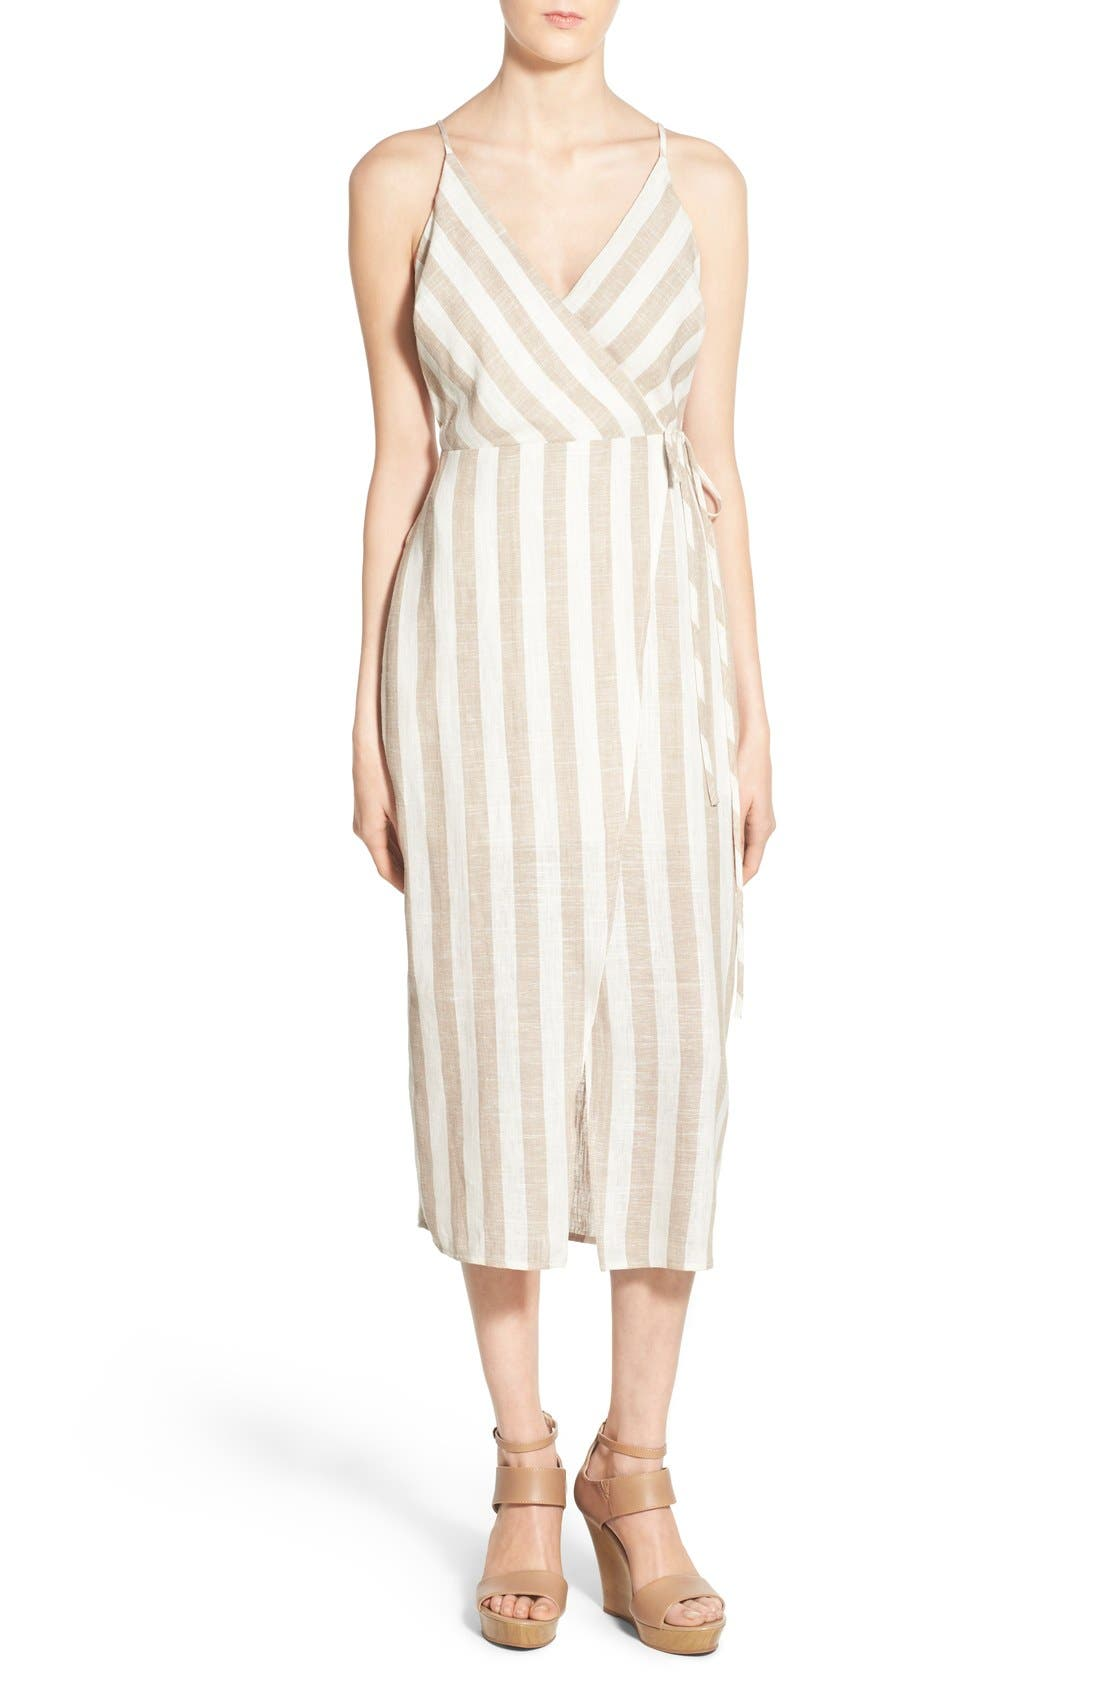 Alternate Image 1 Selected - ASTR Linen Blend Wrap Dress